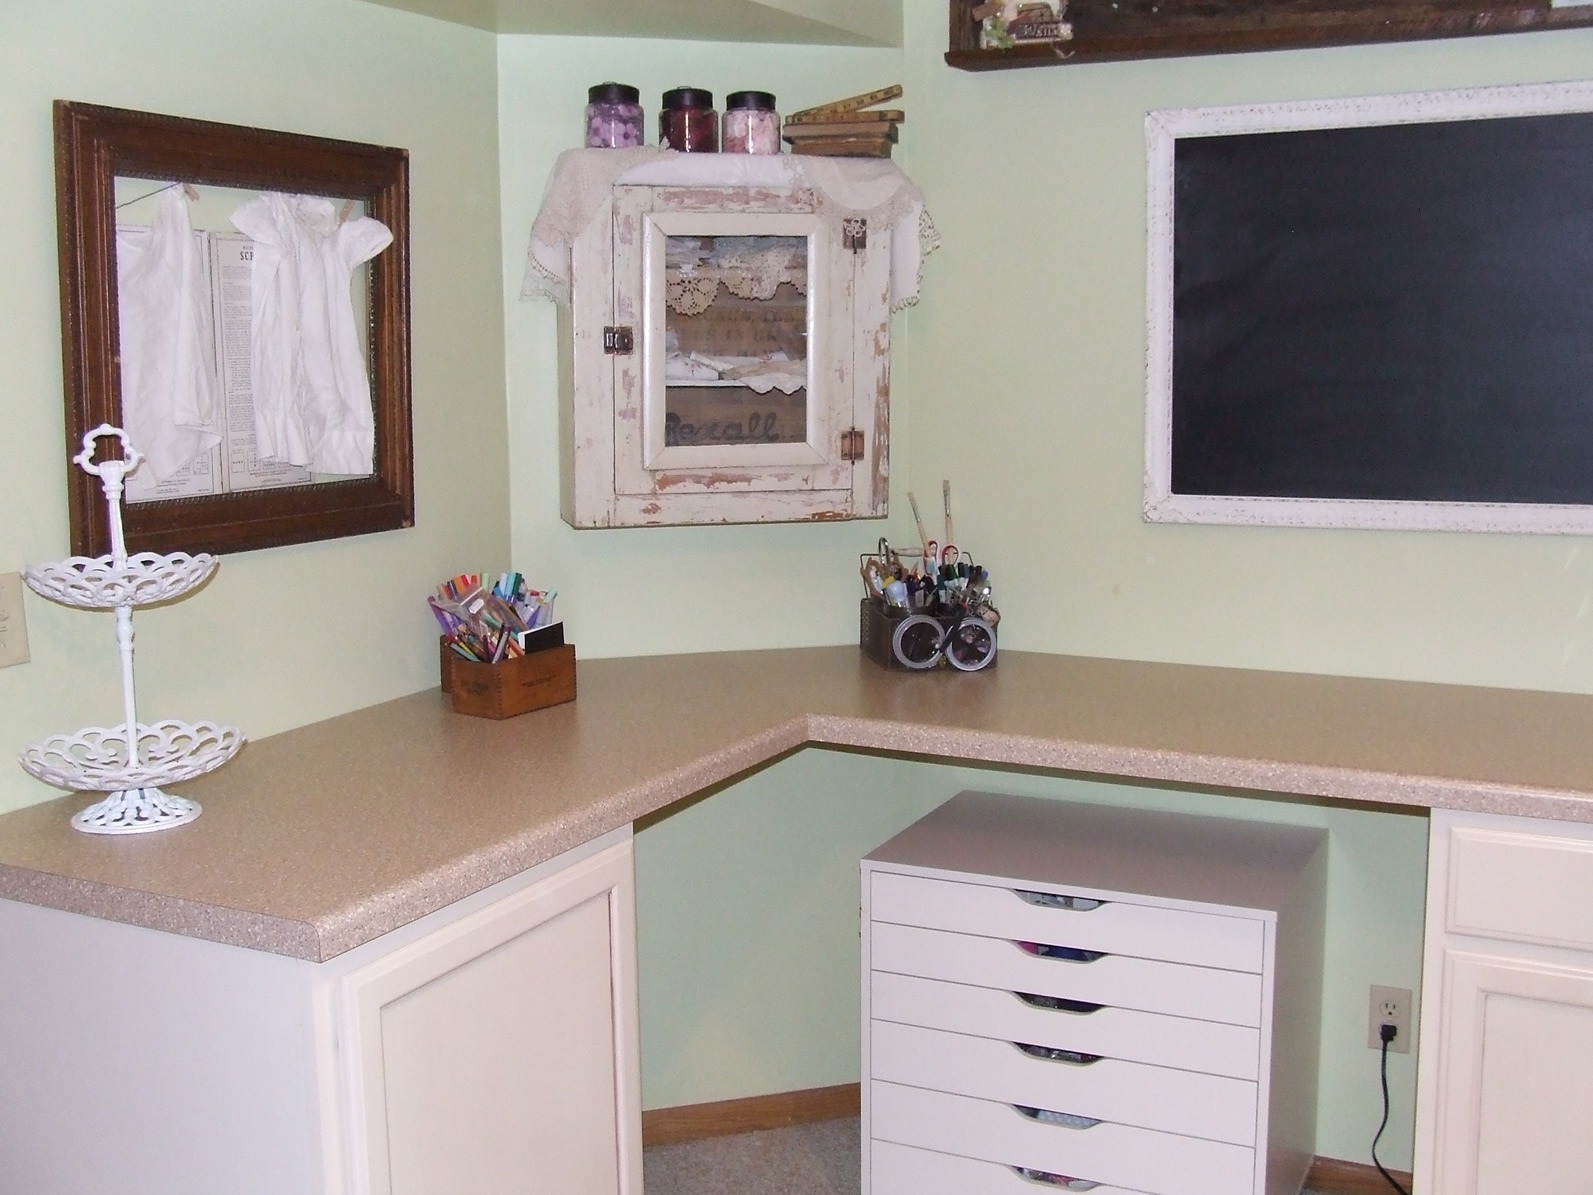 Pieces of Home Designs: August 2010